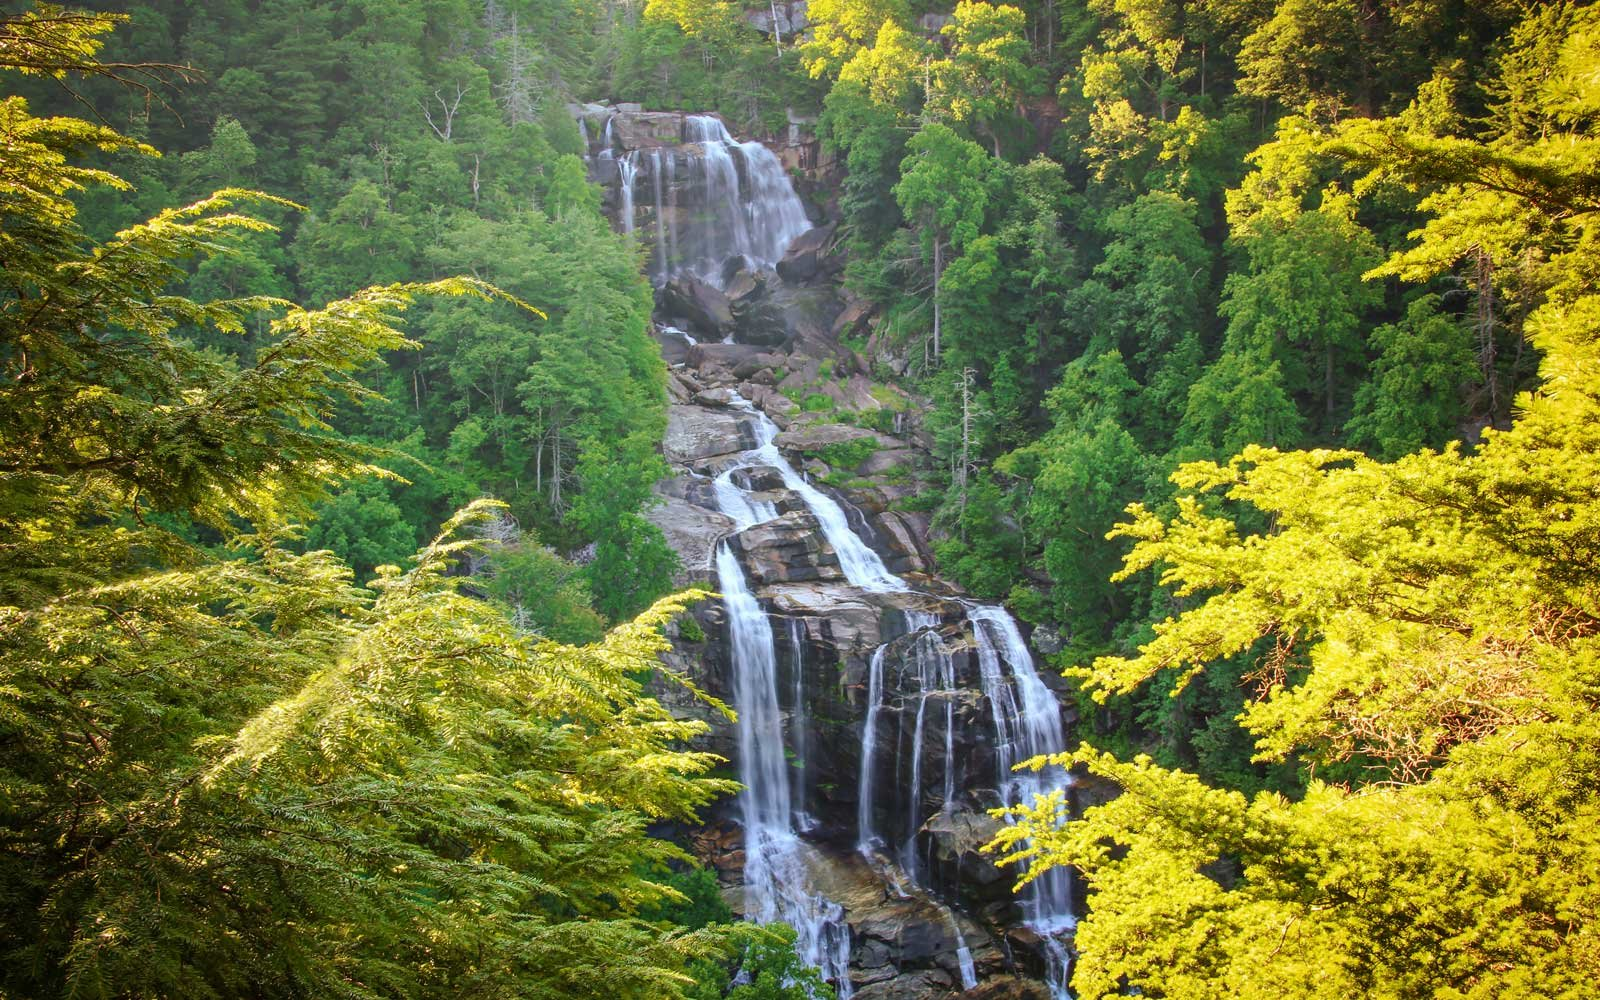 Upper Whitewater Falls, North Carolina